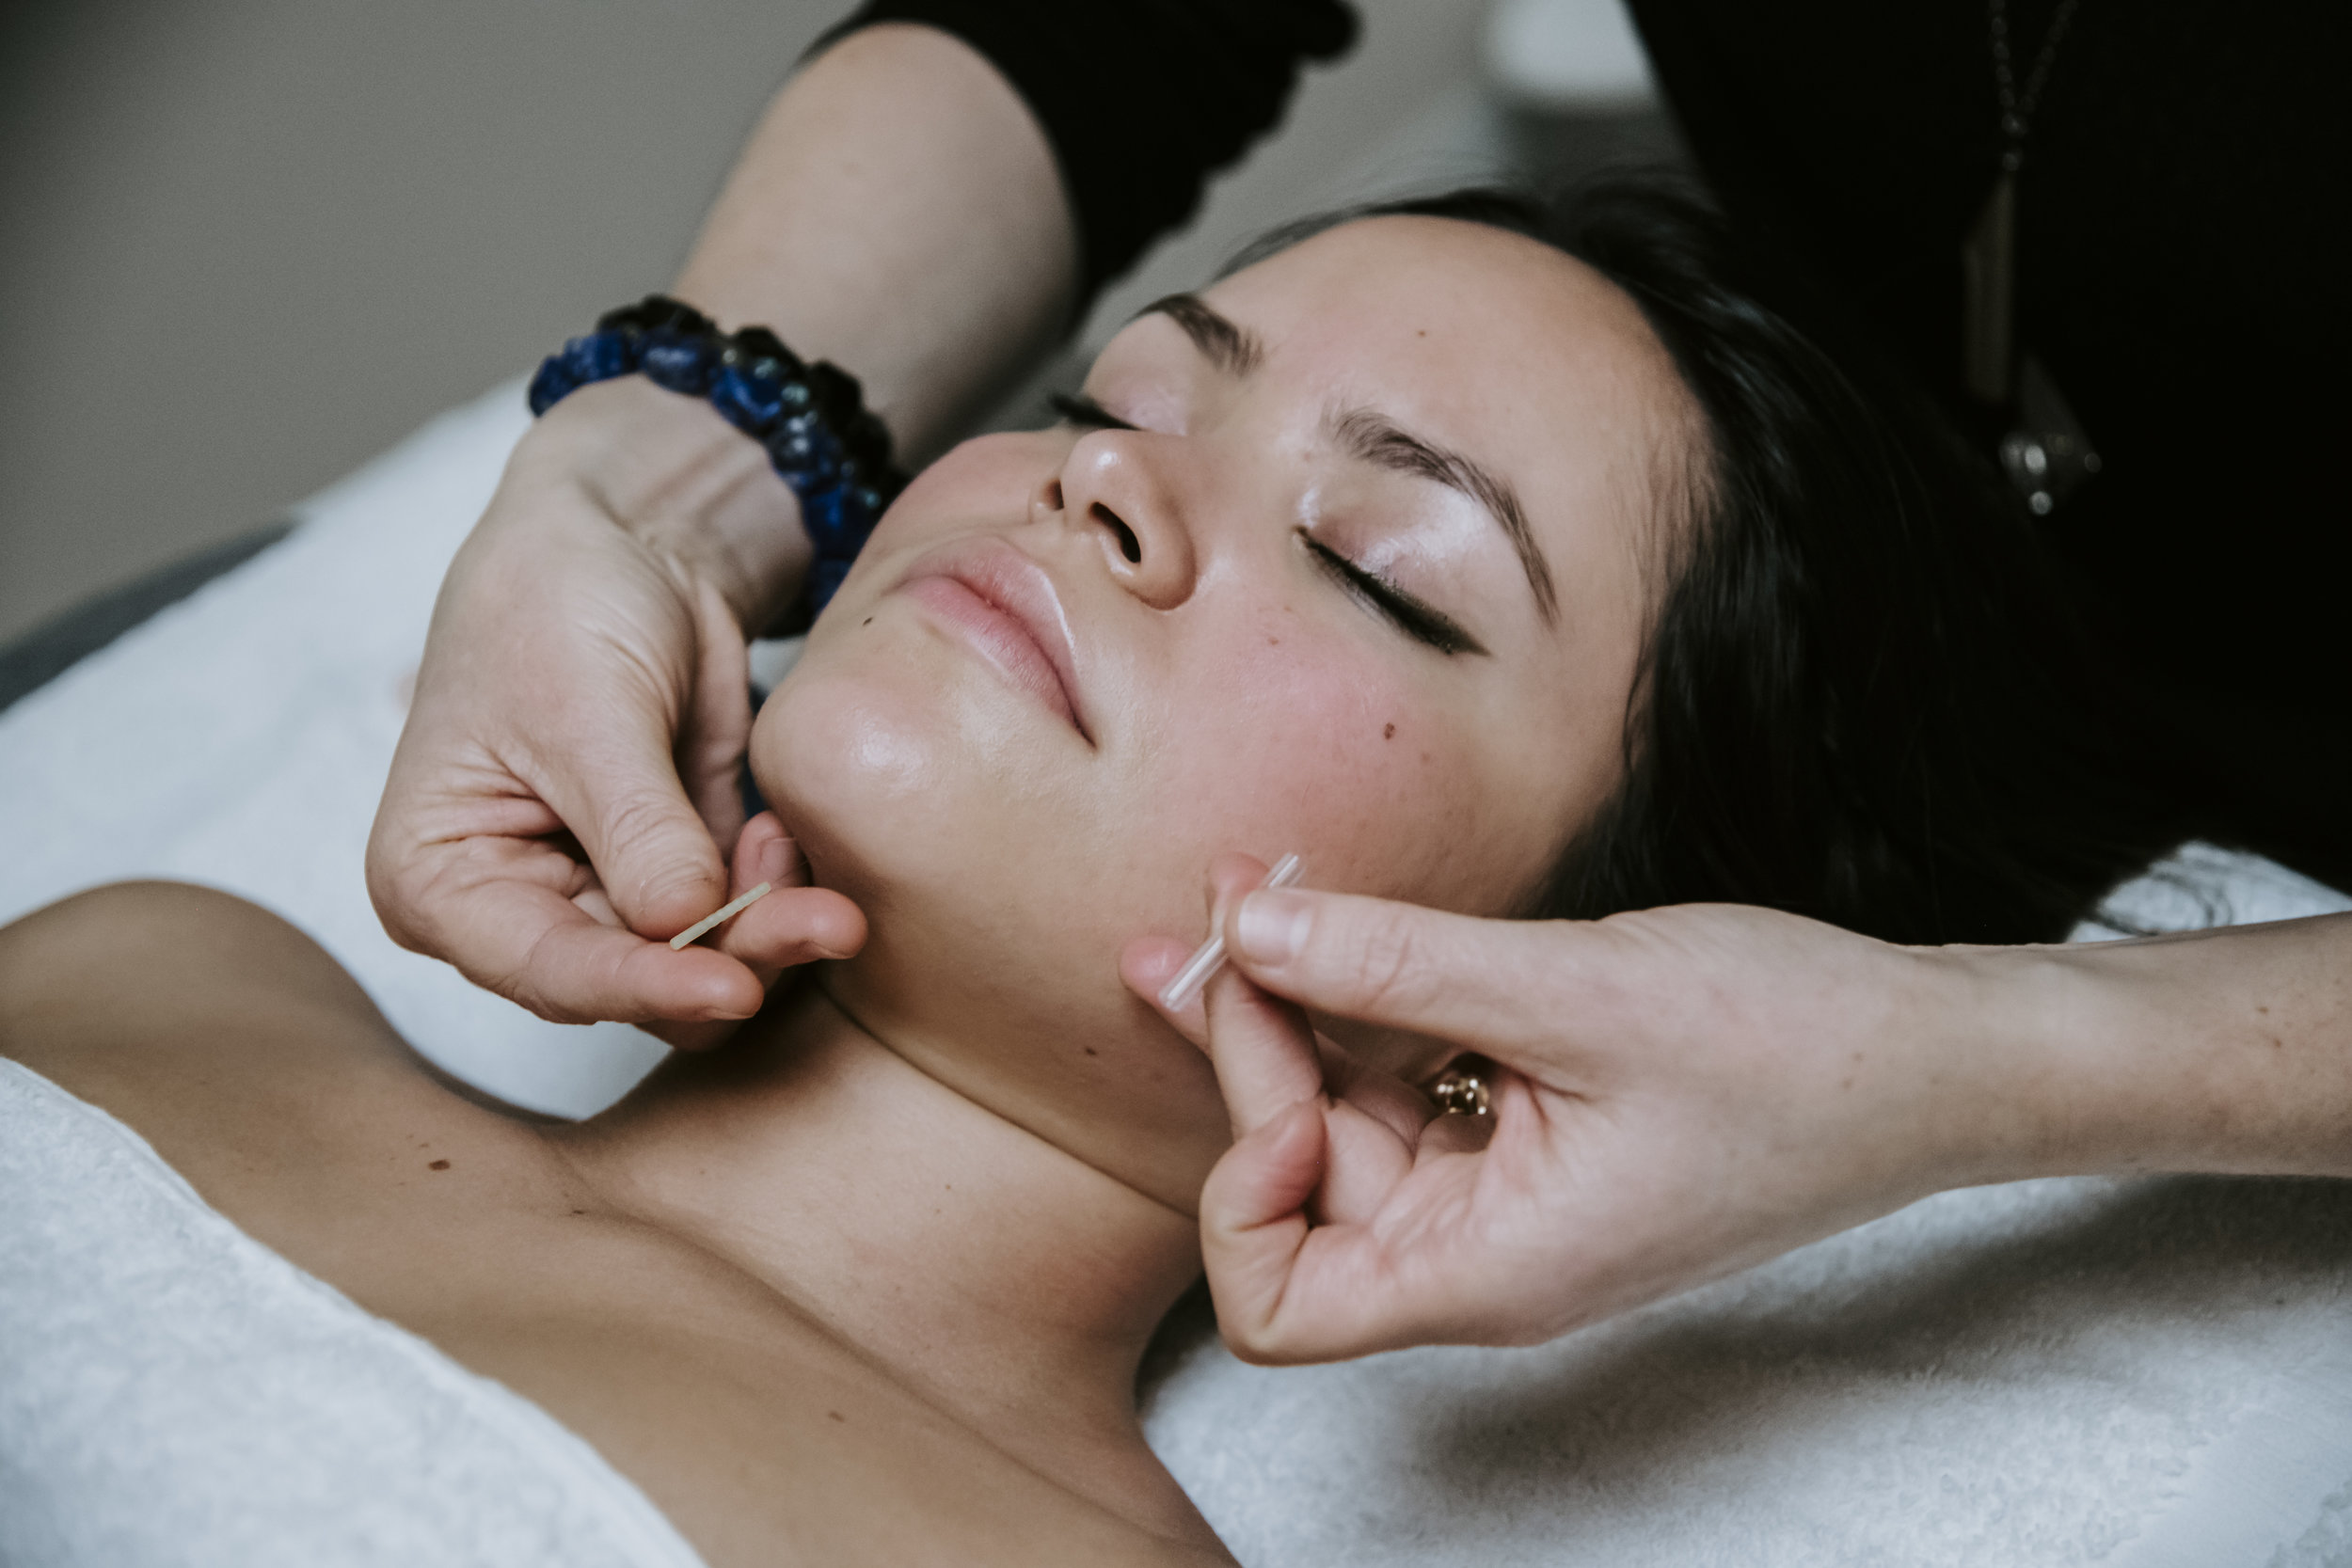 AcuGlow® Facial | 225 - Cleanse | Hydration | Facial/Body Acupuncture | Facial Gua Sha or Facial Cupping | LED | Facial Massage 60 minsThis personalized treatment aims to harmonize imbalance in the body that leads to skin ailments such as acne, rosacea, muscle weakness, puffiness, and wrinkles. After a tailored skin assessment, this treatment begins with a deep cleanse, using the organic Beauty Shamans skincare line, also incorporating targeted facial and neck massage. Facial acupuncture points are stimulated to encourage the production of collagen and circulation, while also helping to lift and define points like the cheeks, jawline, and eyebrows. LED light therapy is used to target acne, wrinkles, and inflammation.